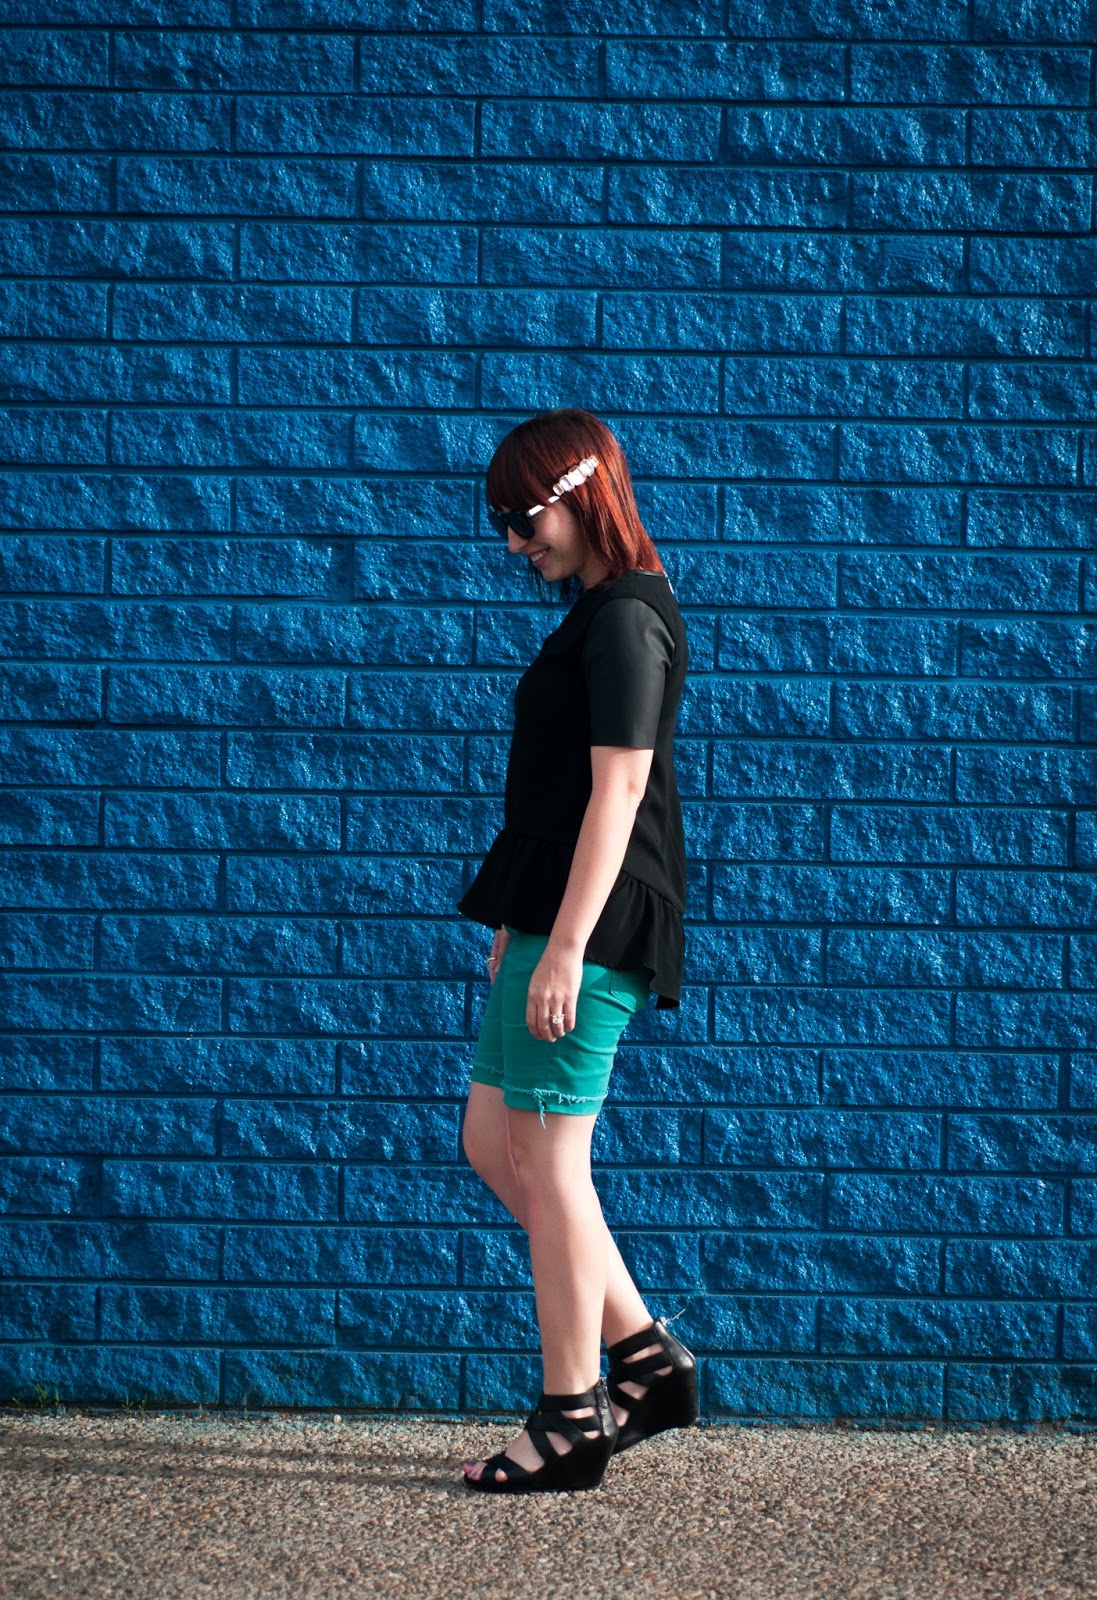 style blog, fashion blog, mens style, womens style, couples style blog, jcrew short sleeve shirt, jcrew, jcrew menswear, jcrew mens shorts, sperry topsider, boat shoes, crocodile belt, nixon rotolog, nixon, nixon watch, wood watch, plaid shirt, mens plaid button up, peplum, leather peplum, peplum top, levis, levis cut off, cut off shorts, wedges, dolce vita, dolce vita shoes, dvf, sunday somewhere, sunday somewhere sunglasses, forever 21, forever 21 hair clip, jewel barrett, barrett,